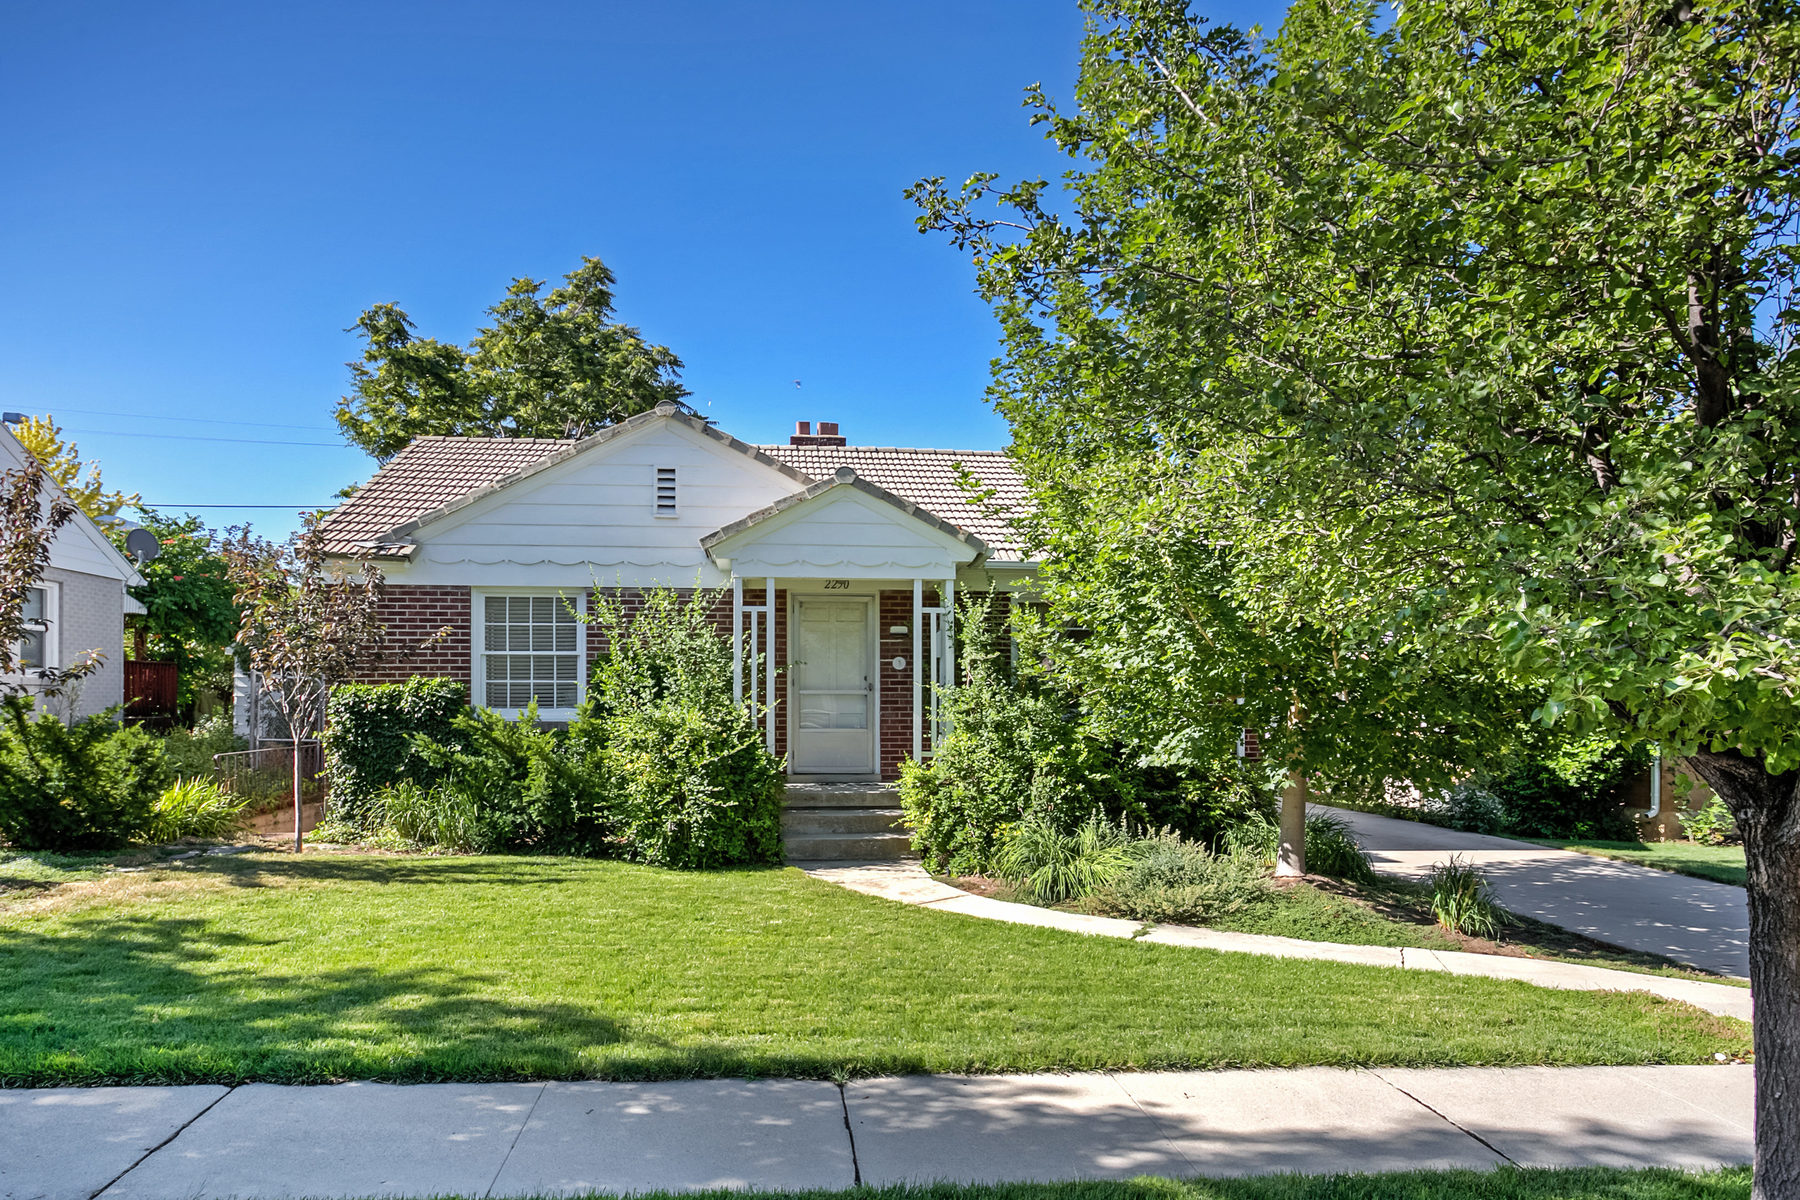 Single Family Home for Sale at Traditional Sugar House Bungalow 2250 S Redondo Ave Salt Lake City, Utah, 84108 United States